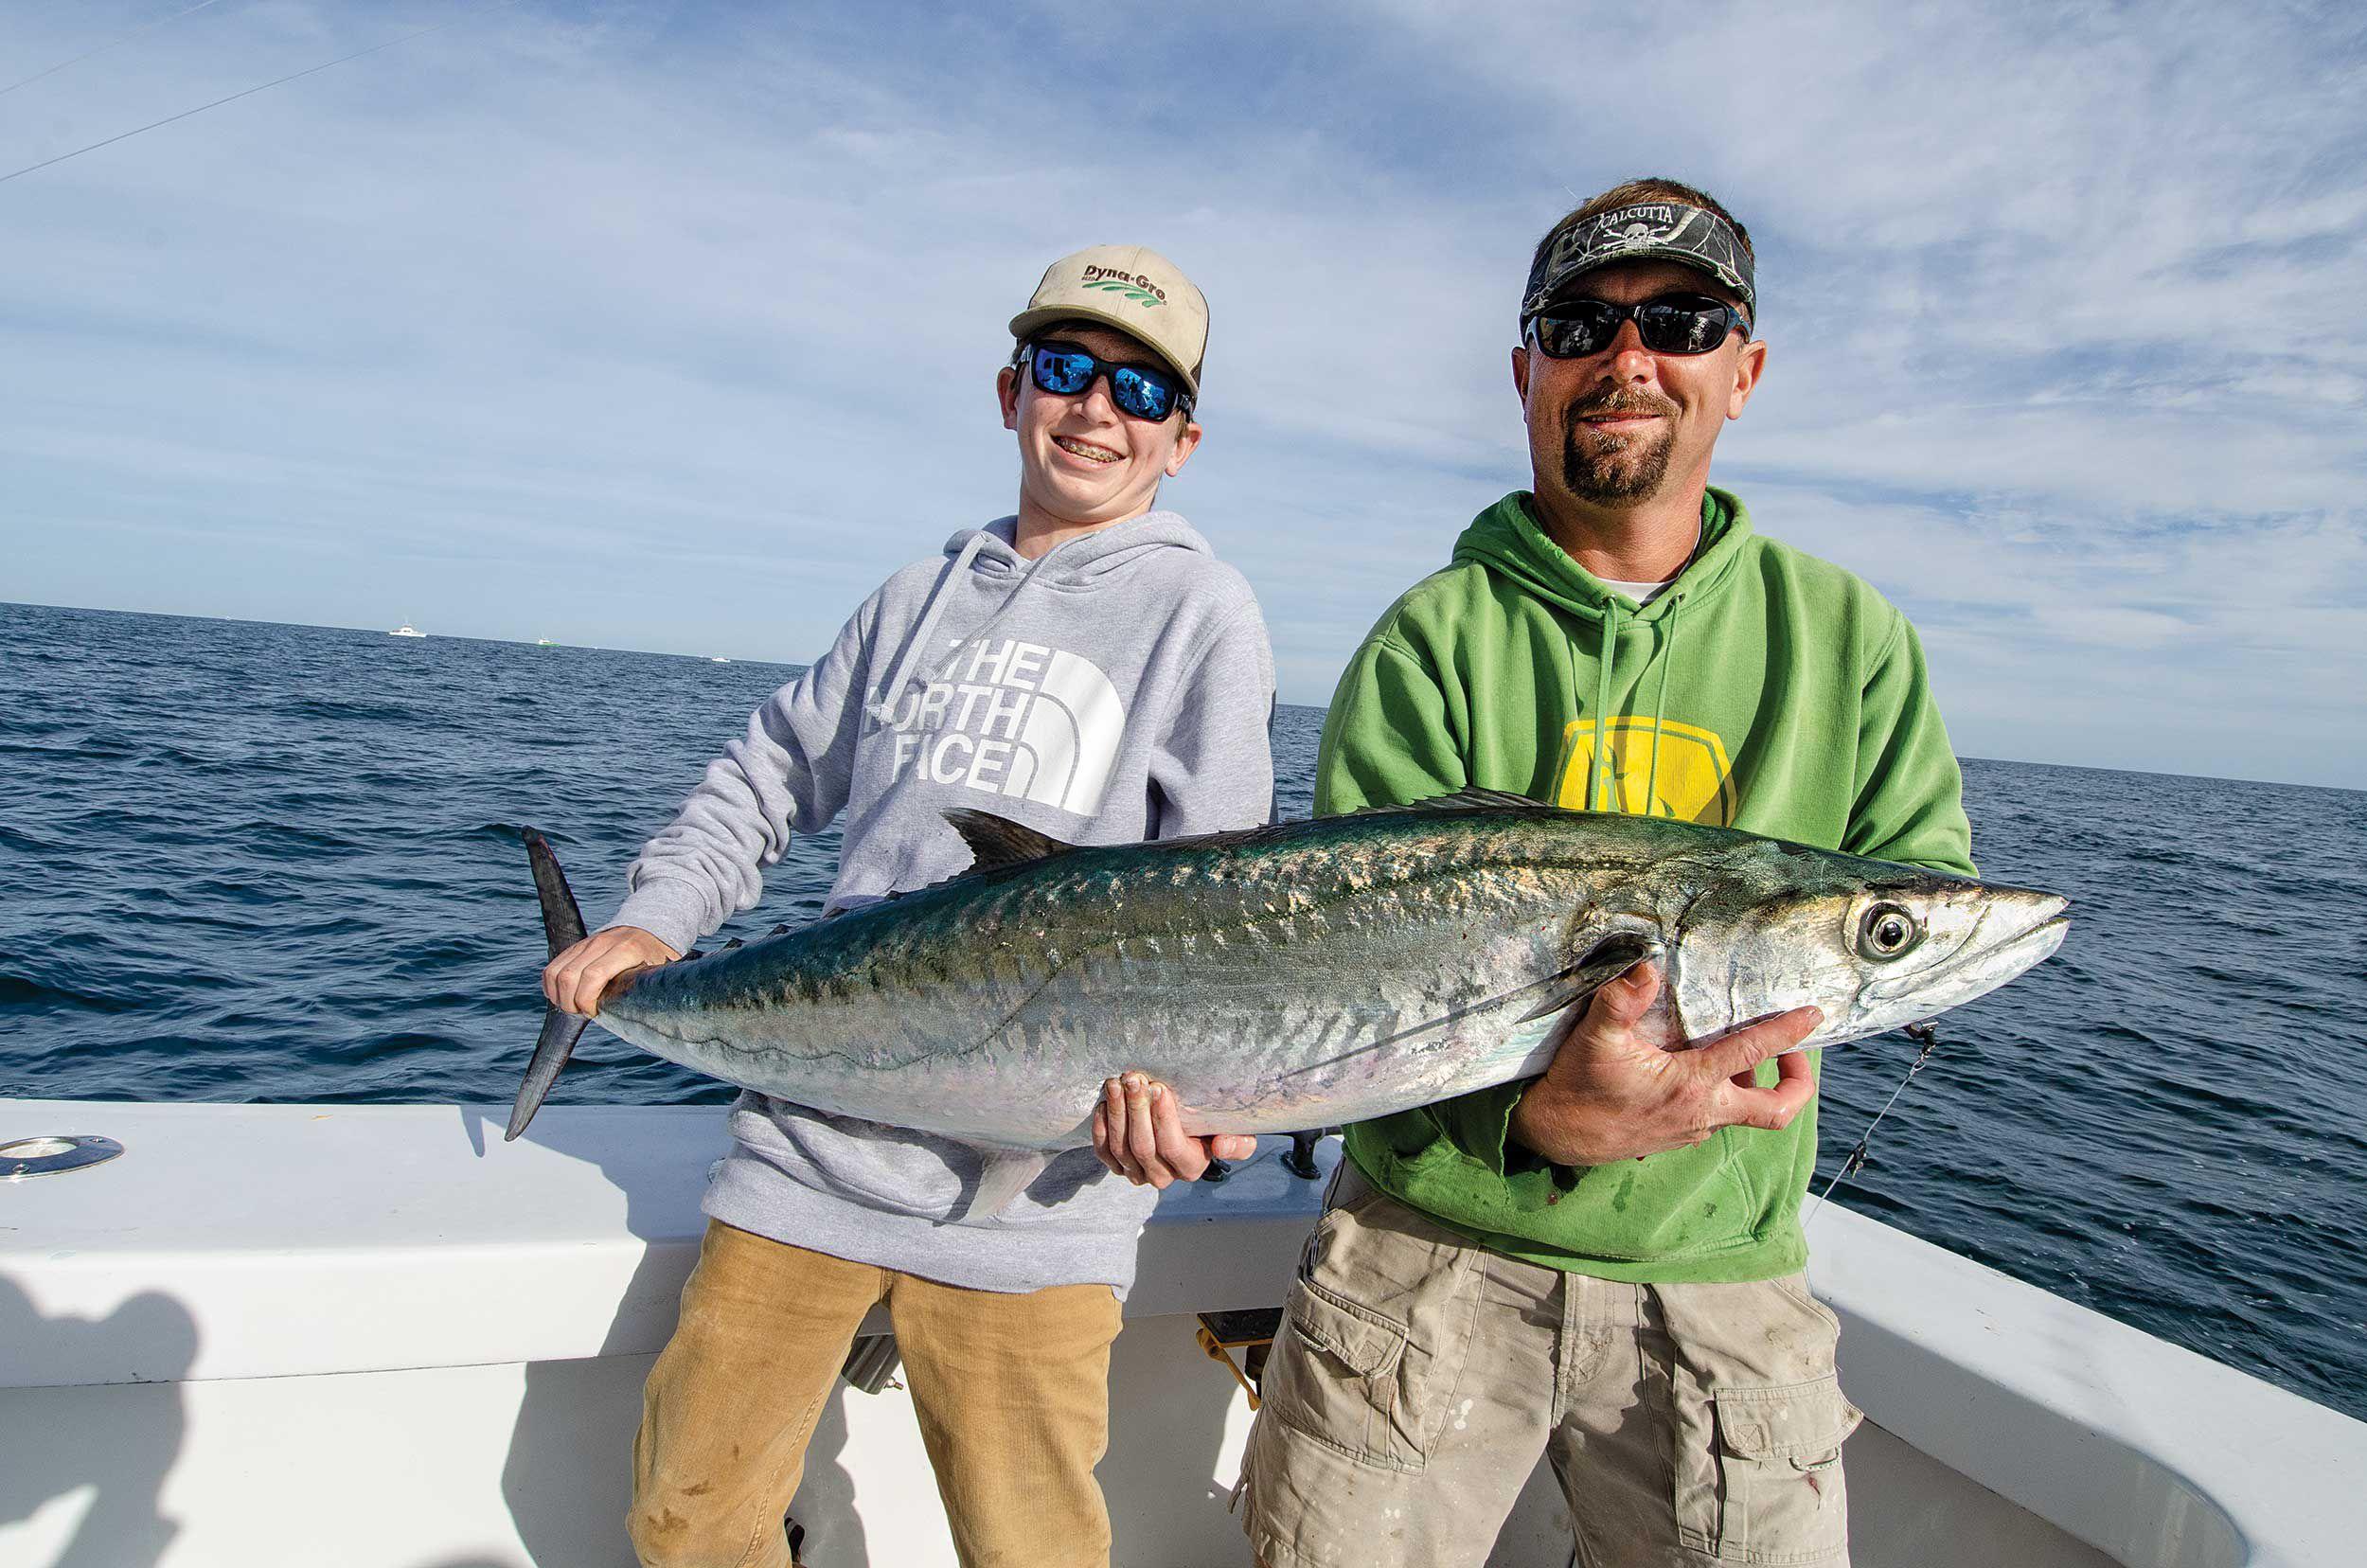 In addition to good reflexes and fishing skills, boating a big king often requires coordination between the angler and crew.